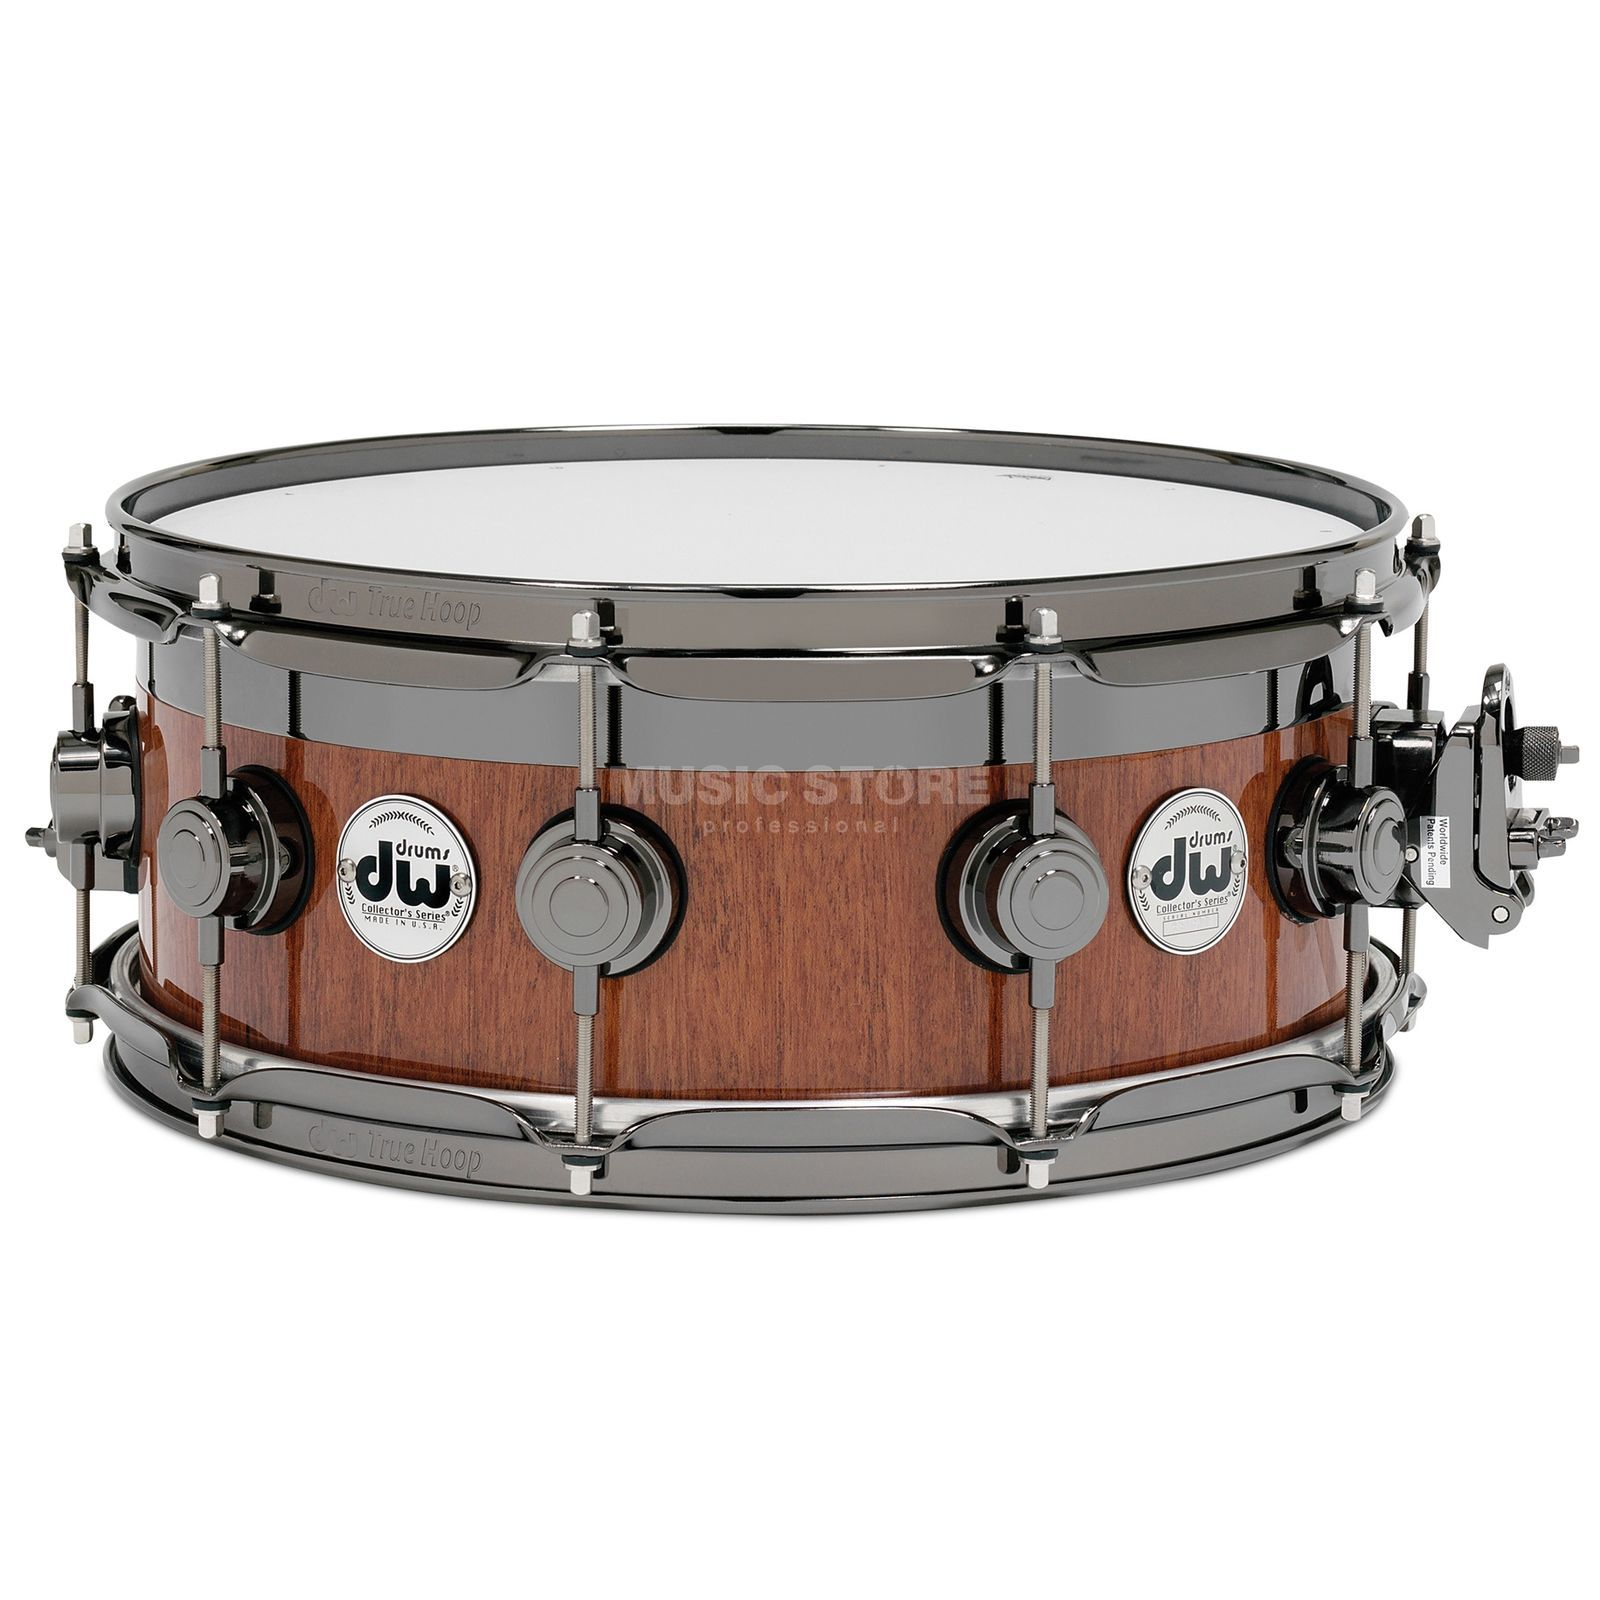 "Drum Workshop Collector Snare 14""x6"", Mahogany, Top Edge VLT Maple Produktbild"